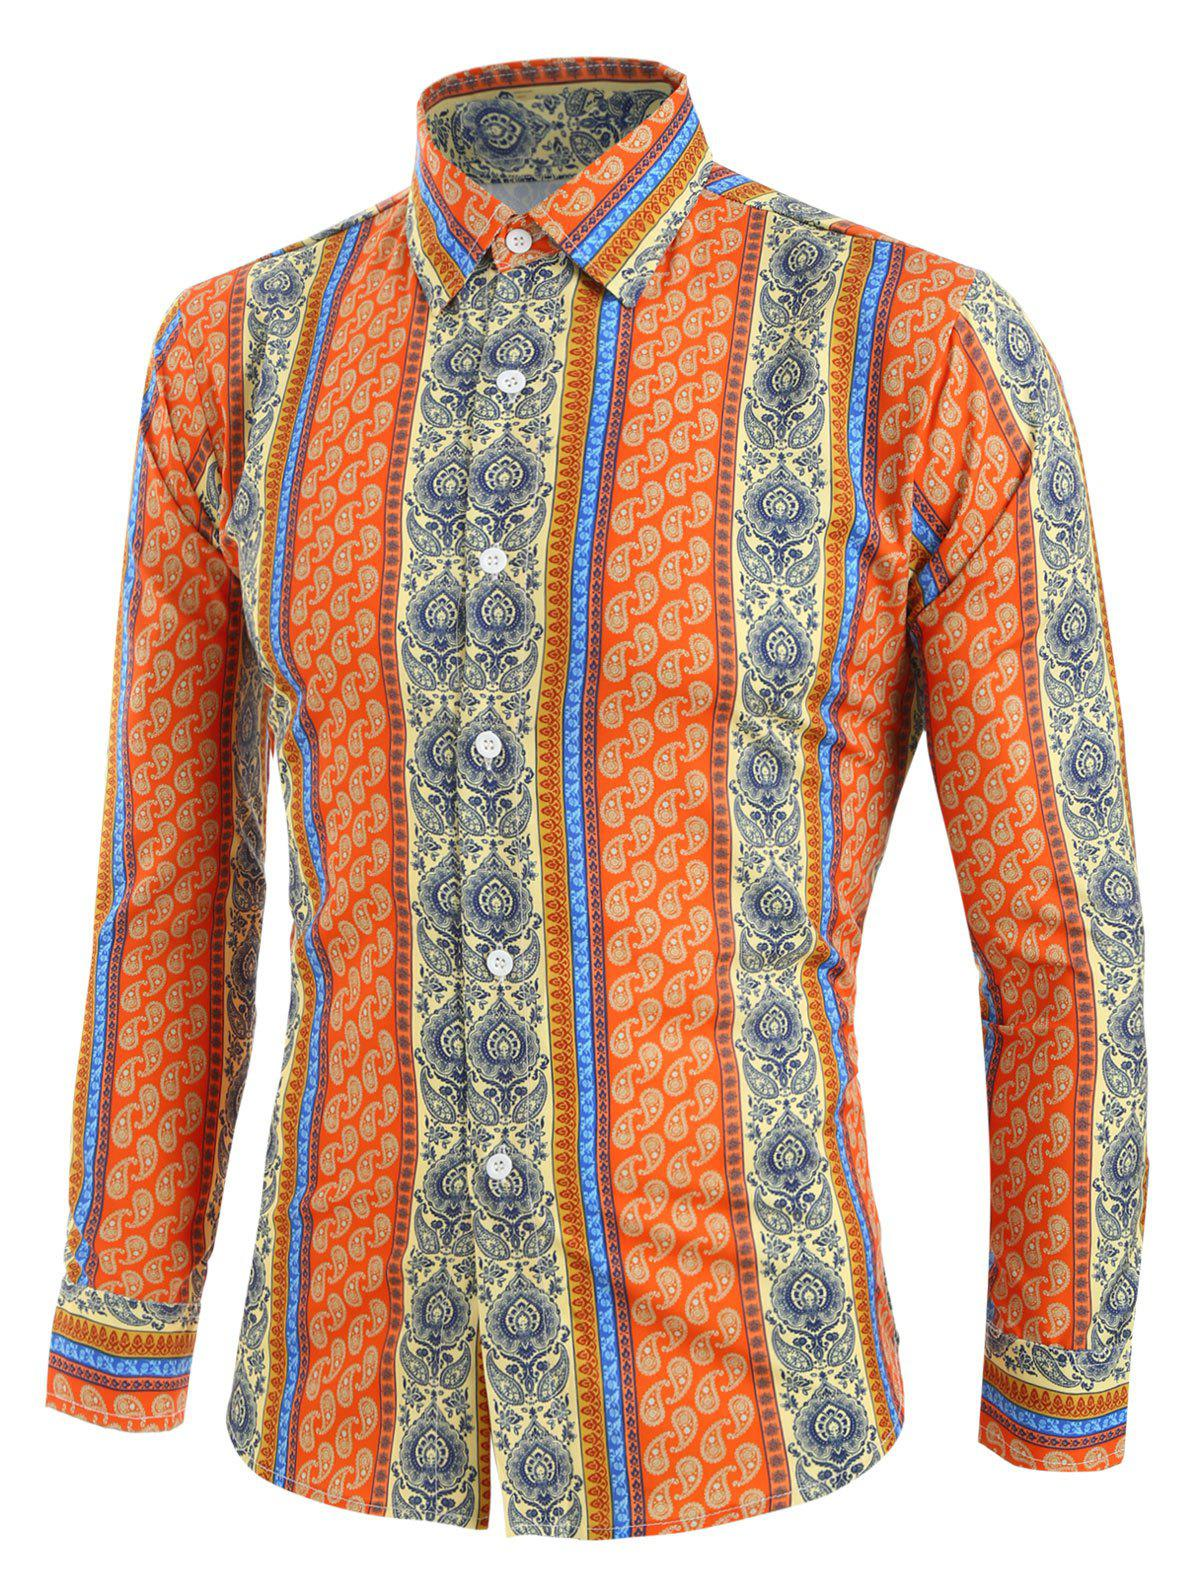 Tribal Print Button Up Long-sleeved Shirt - multicolor S